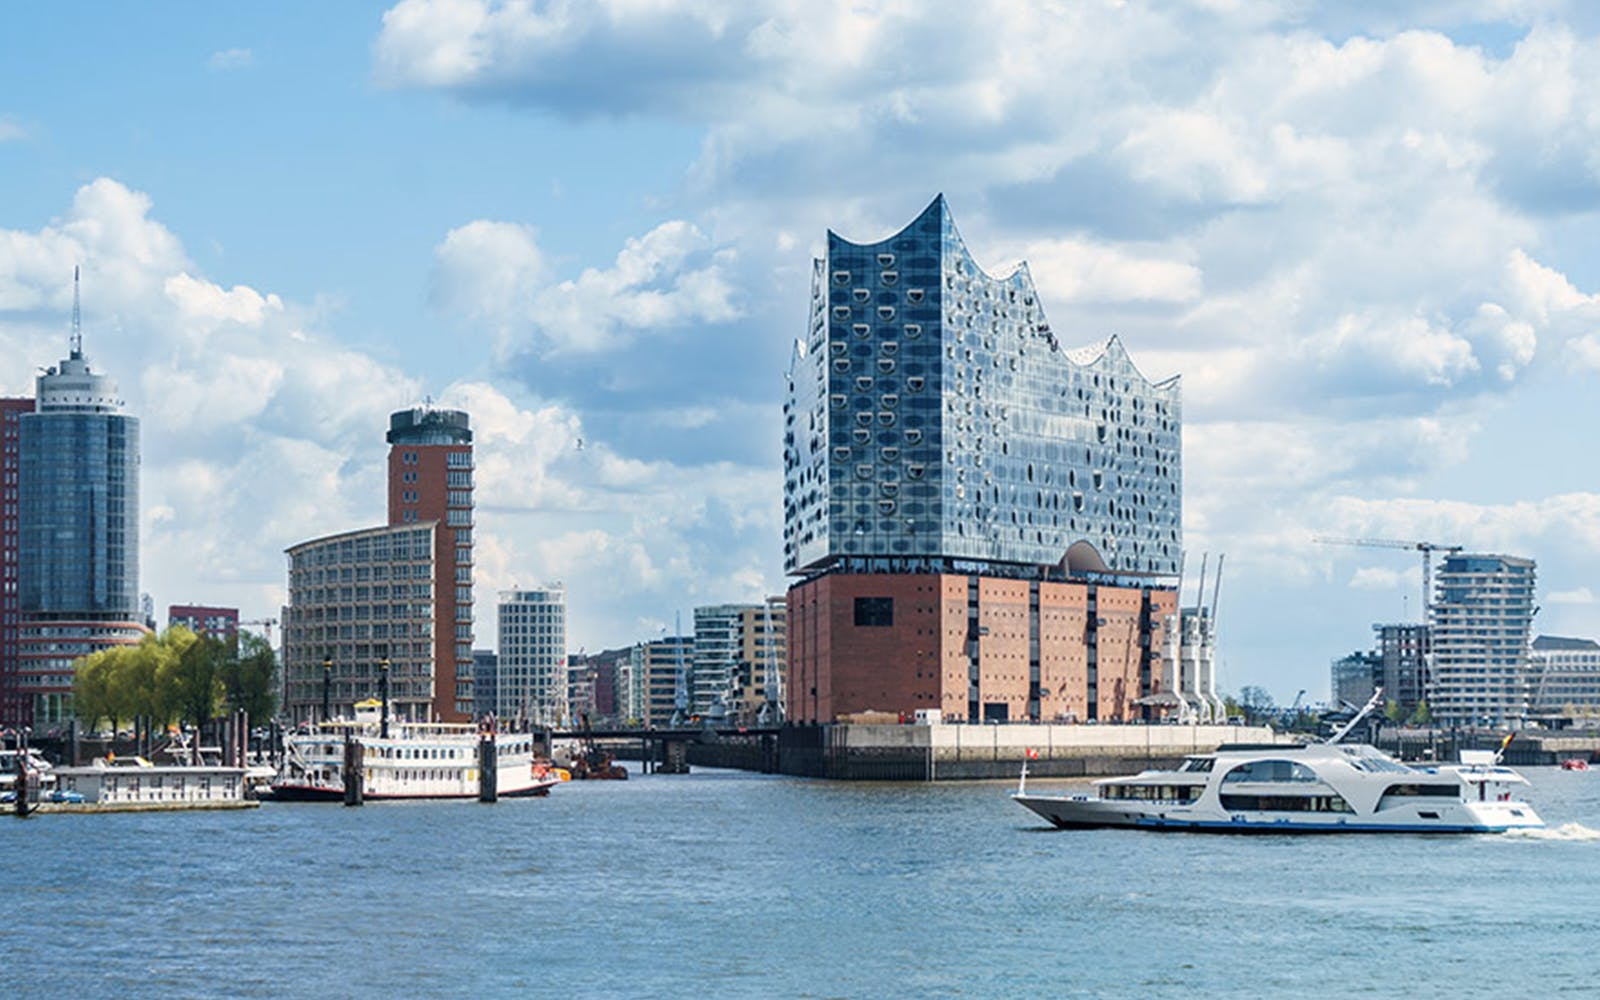 2 in 1 combo: harbor cruise + elbphilharmonie guided tour-1